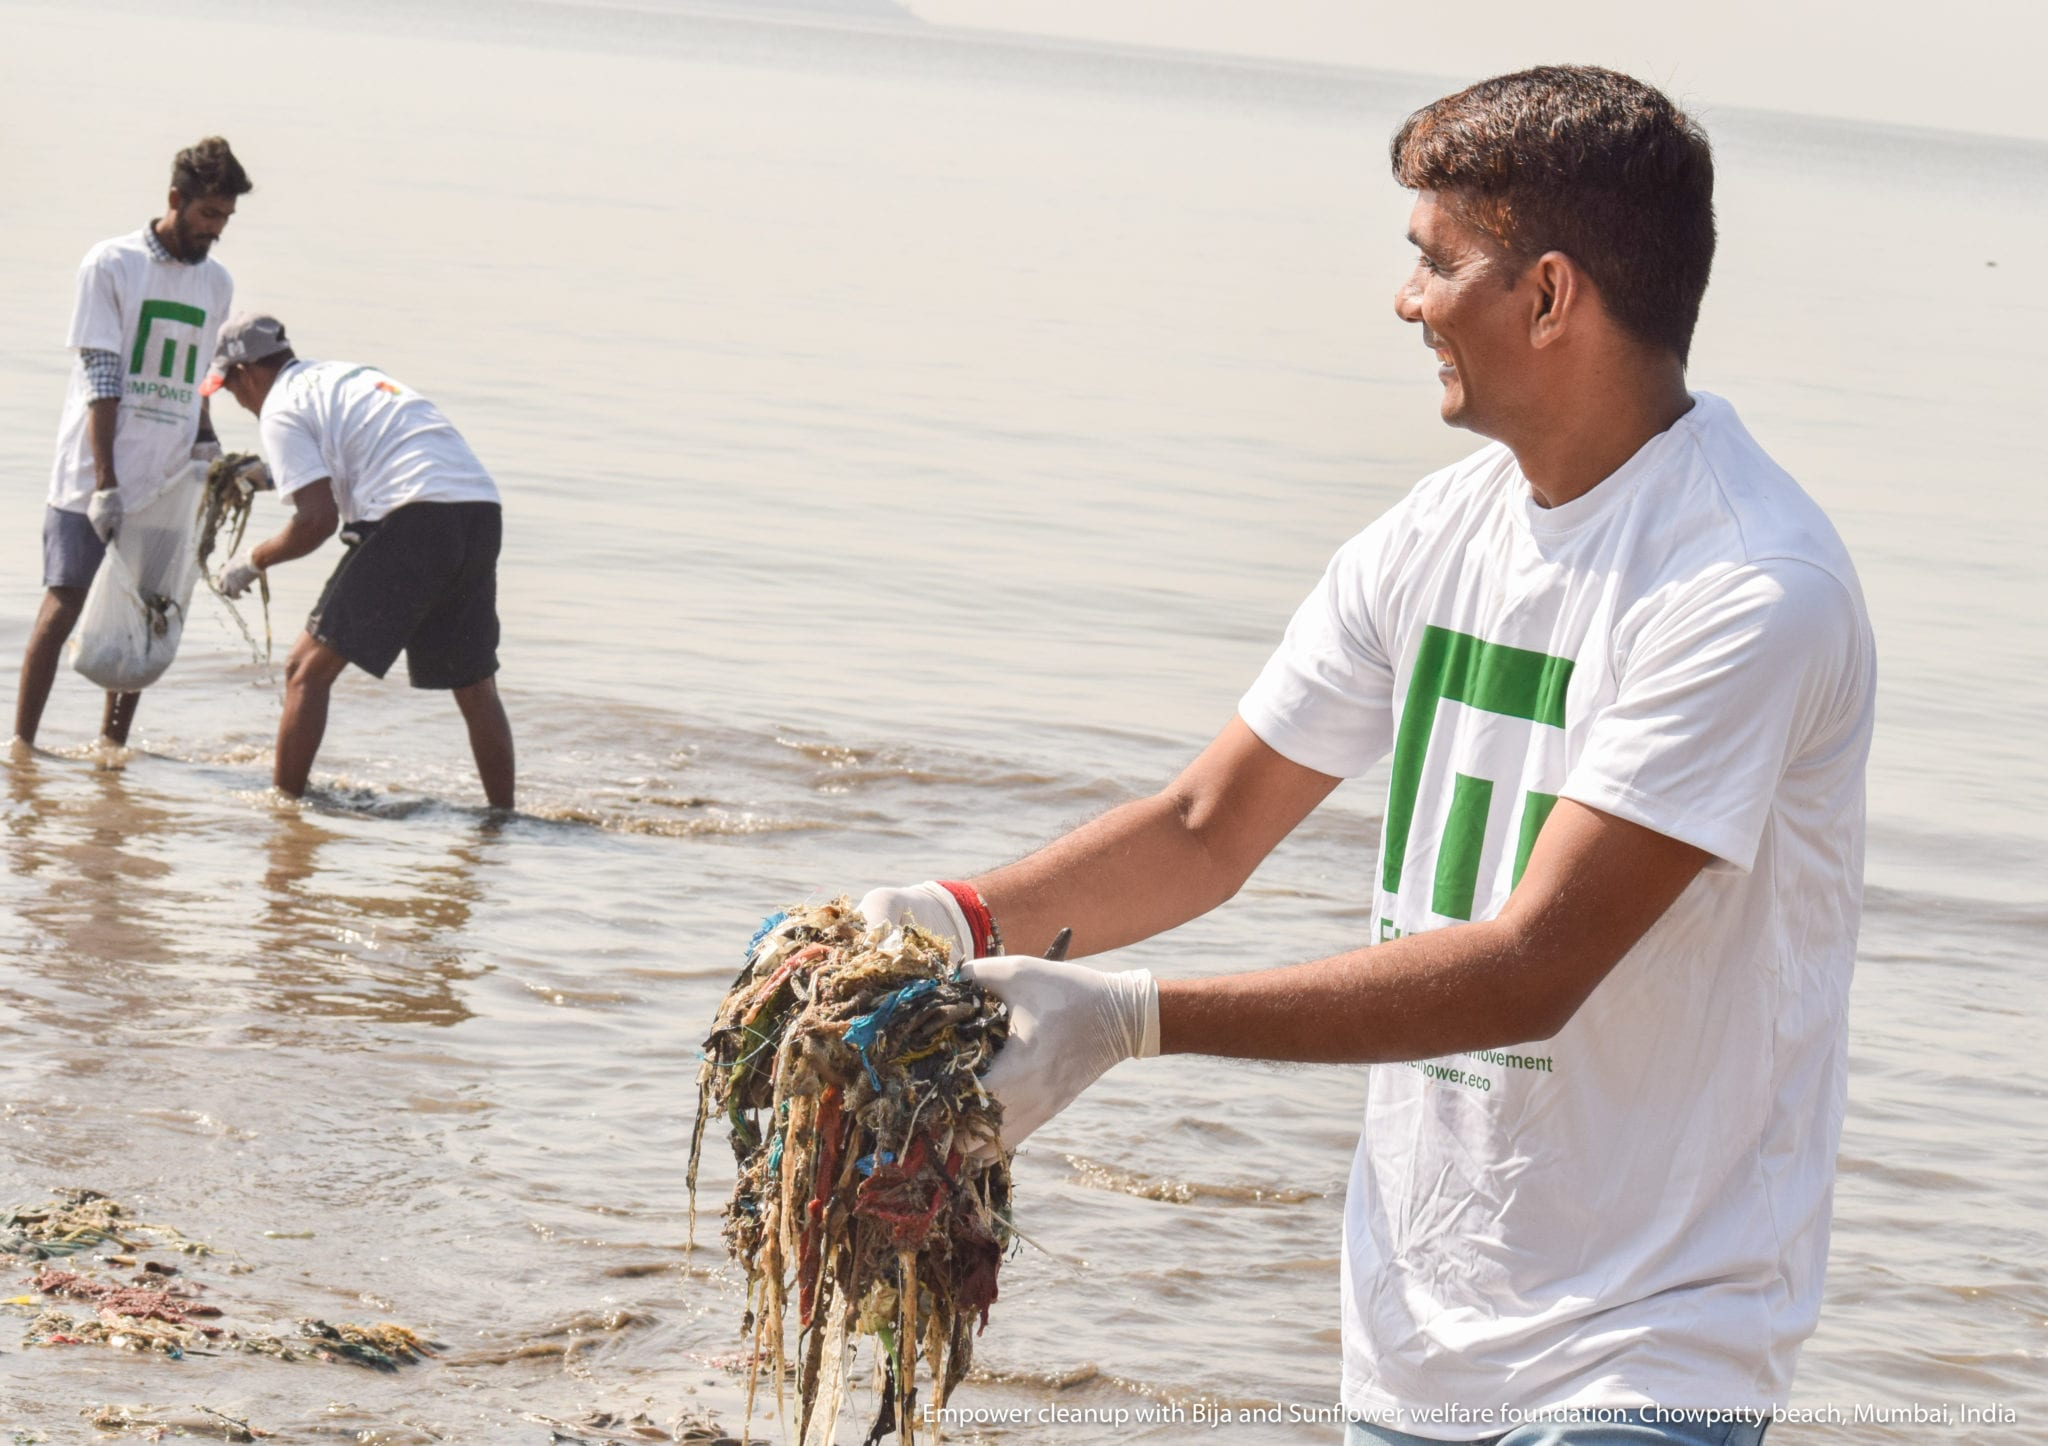 Empower cleanup with Bija and Sunflower welfare foundation. Chowpatty beach, Mumbai, India.